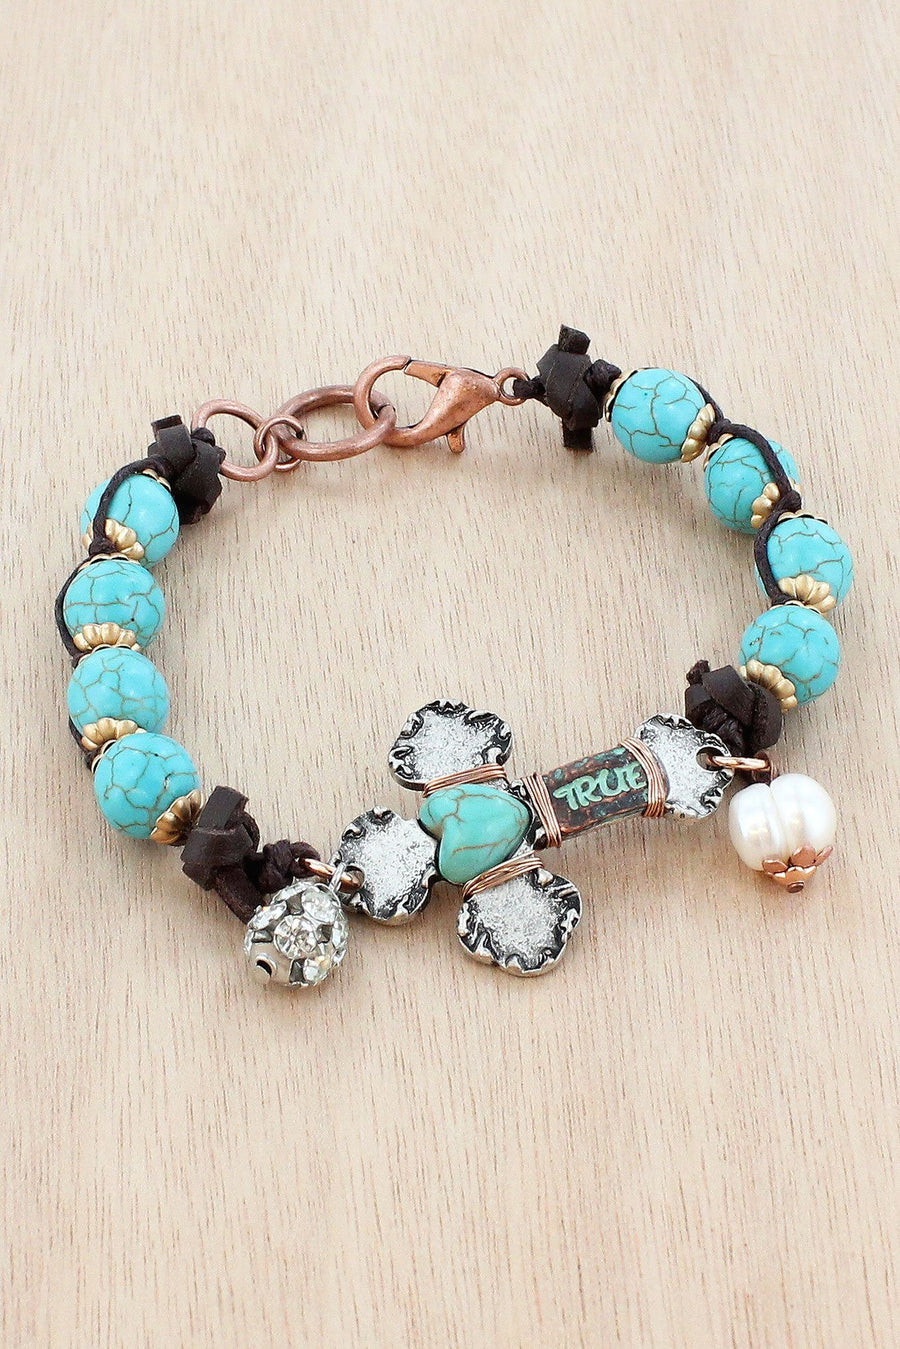 Burnished Silvertone and Turquoise 'True' Cross Beaded Bracelet